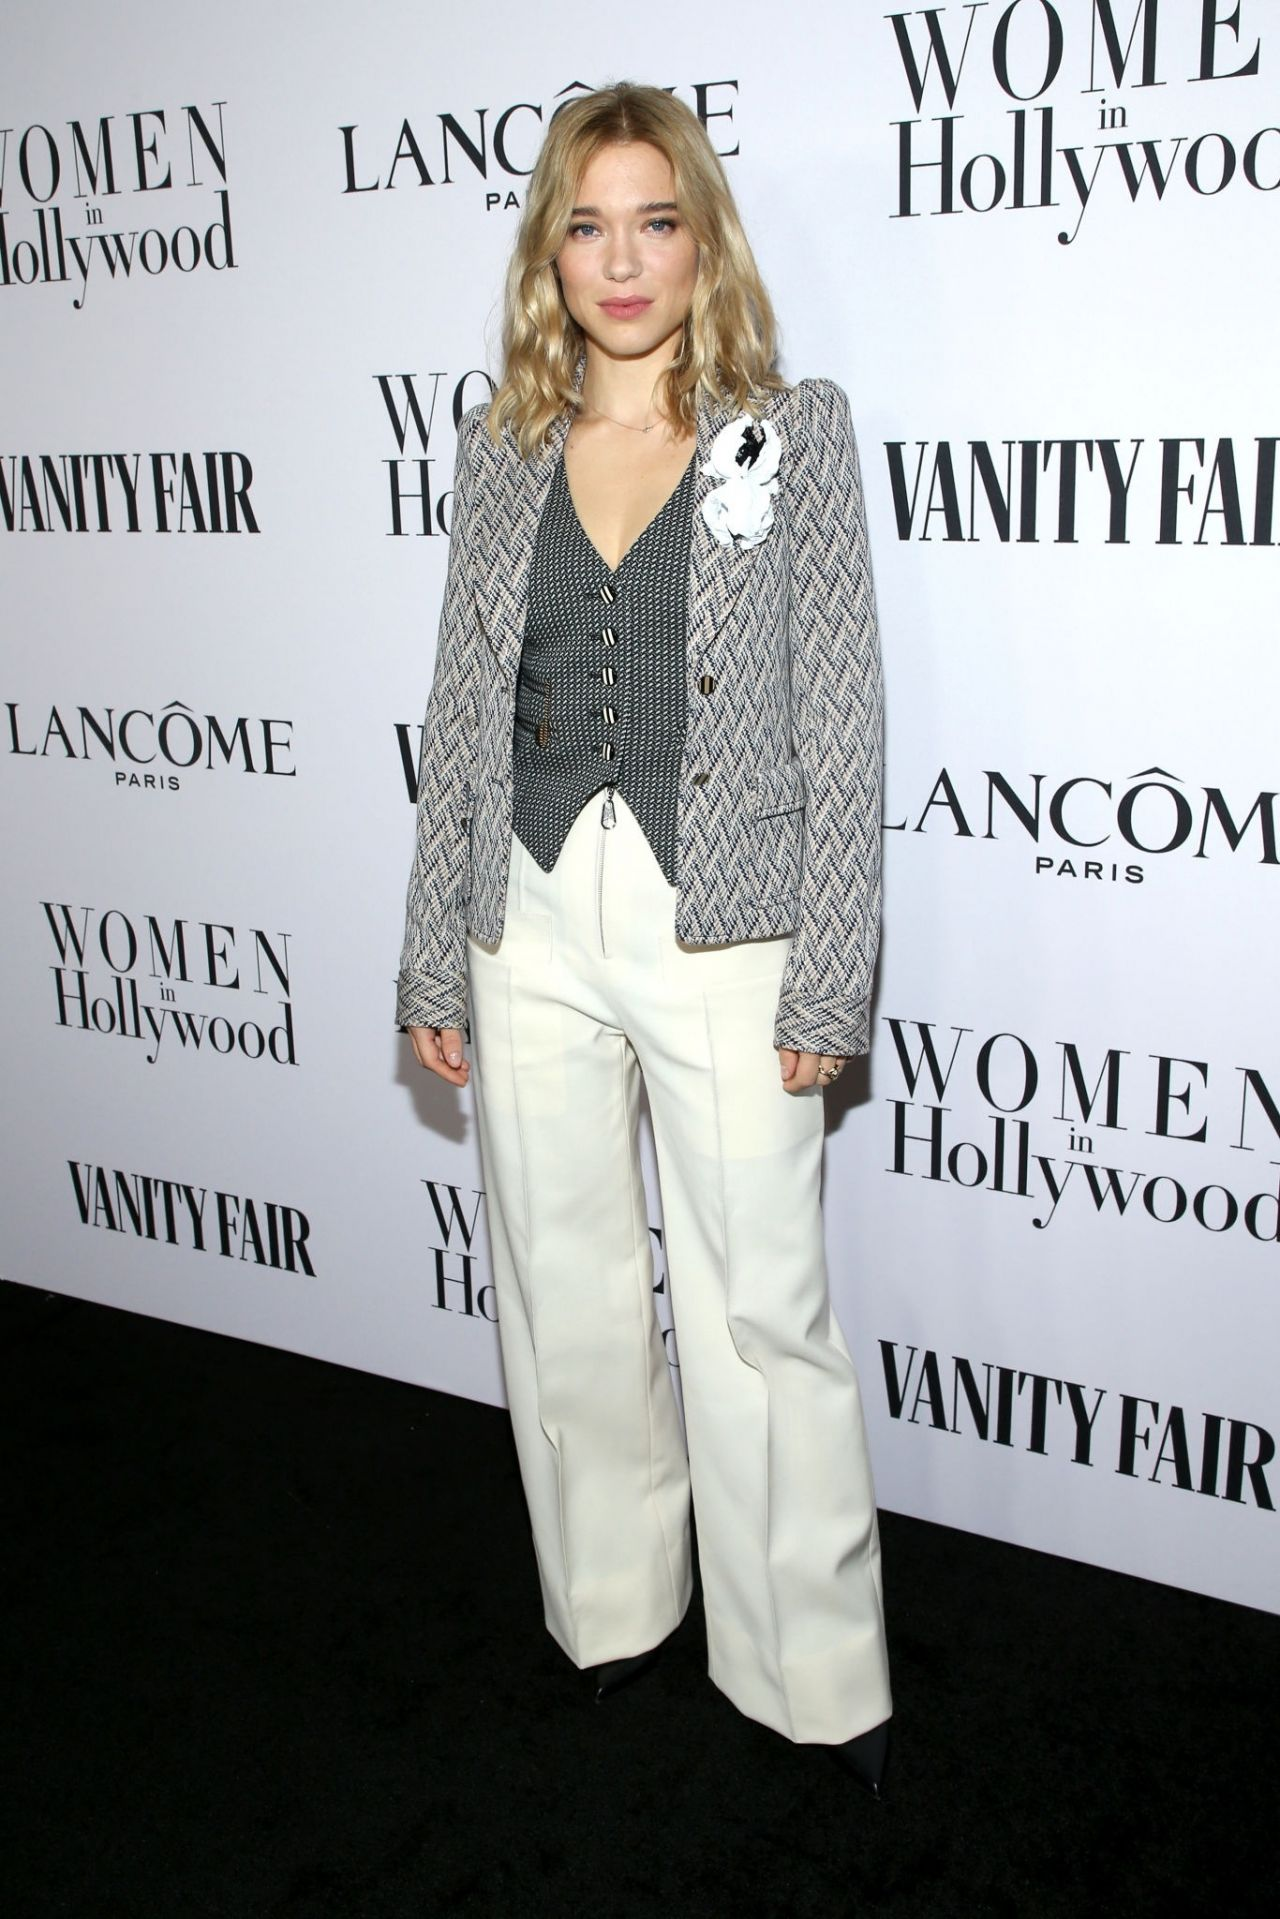 lea-seydoux-in-louis-vuitton-vanity-fair-and-lancome-women-in-hollywood-celebration